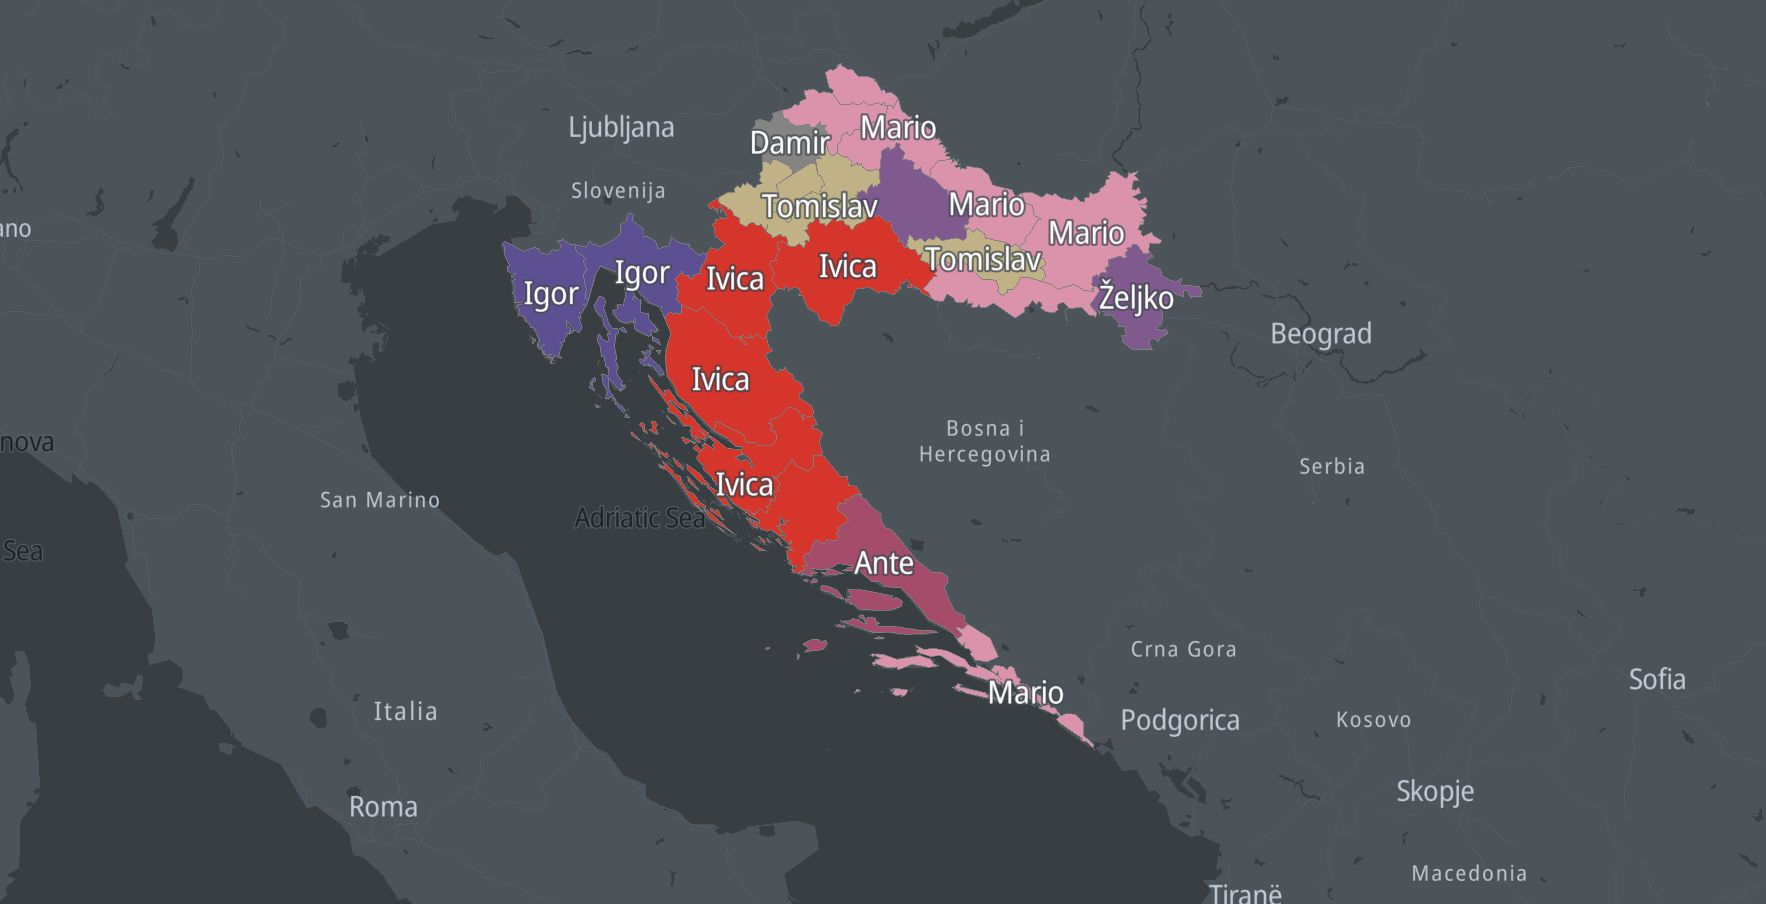 Map of Croatia showing most popular names over generations